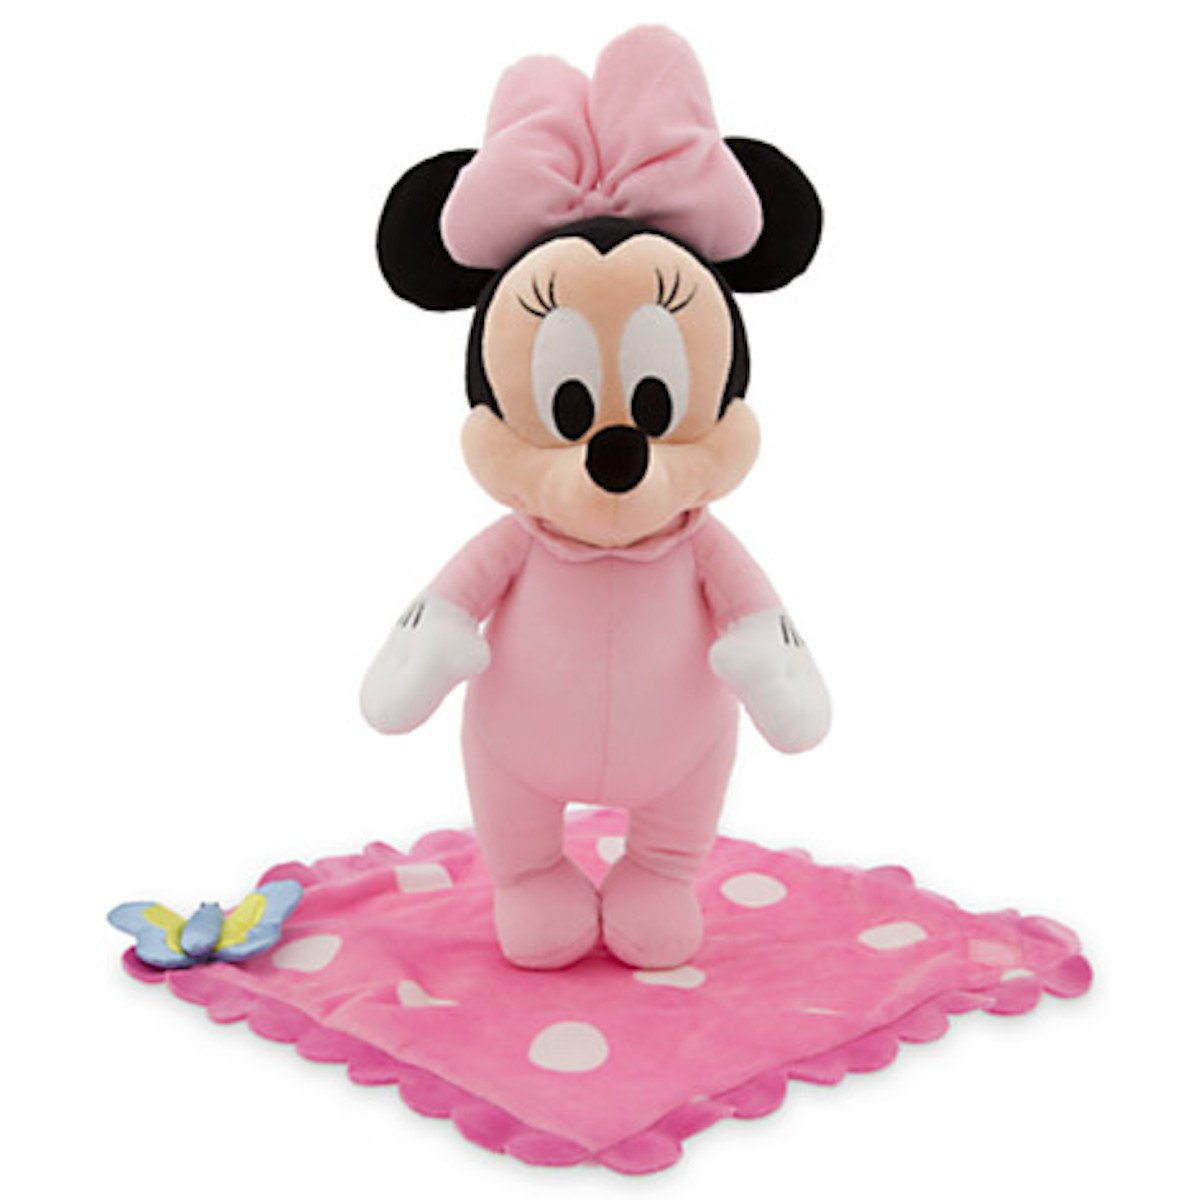 amazoncom disney theme park baby minnie mouse in a blanket plush doll new toys games